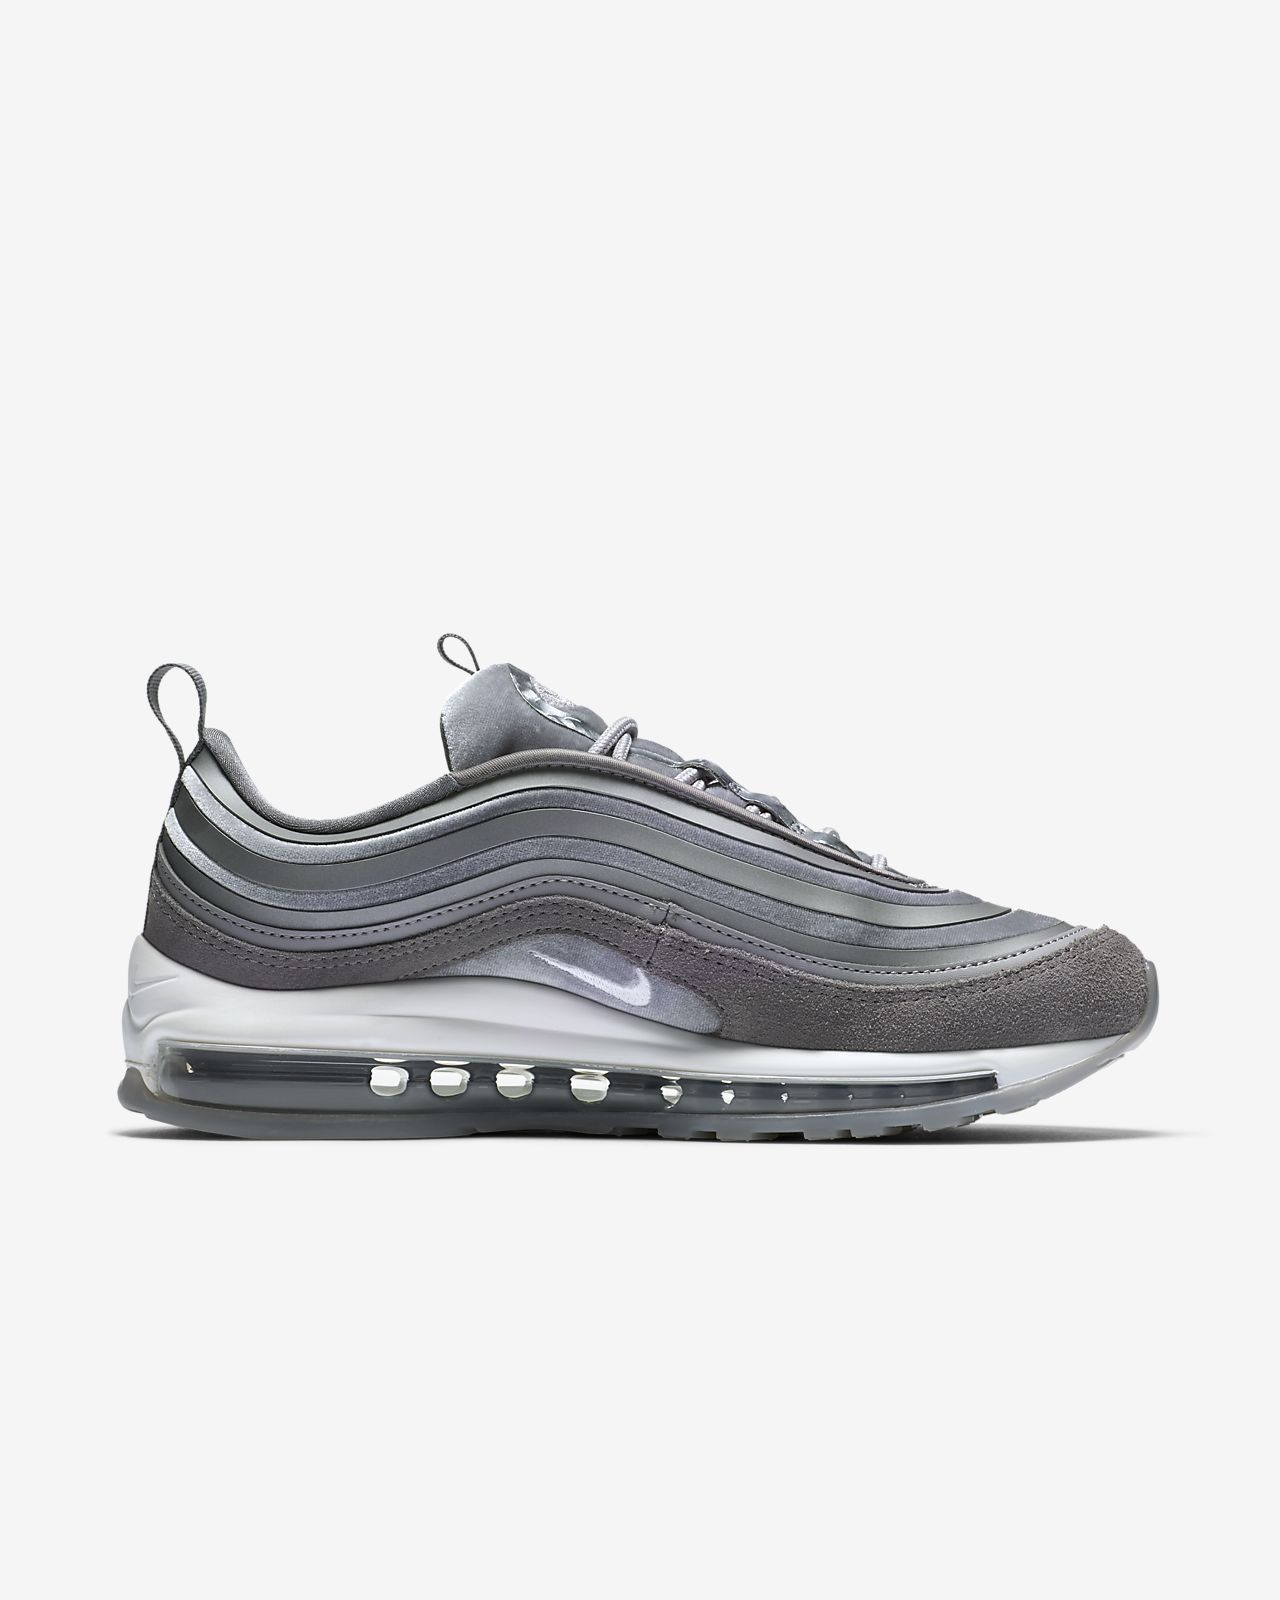 Nike Air Max 97 Ultra '17 LX Women's Lifestyle Shoes Grey/White jZ6938Z